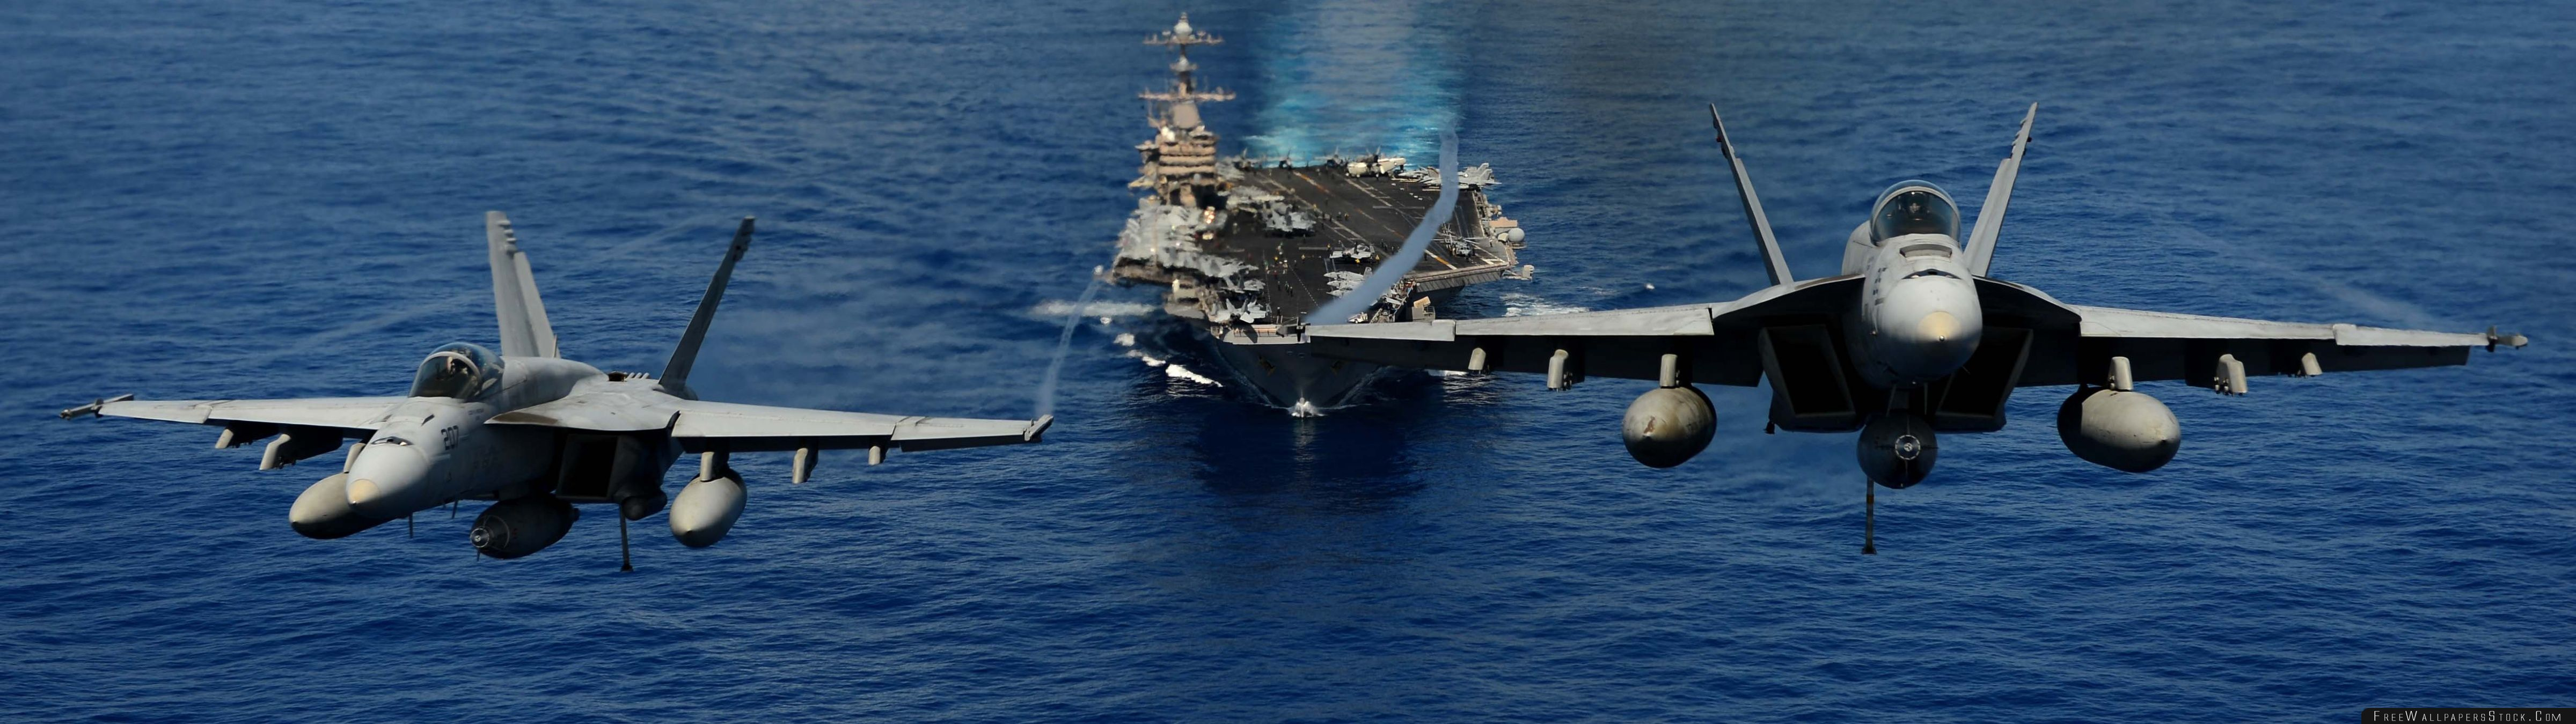 Download Free Wallpaper United States Navy